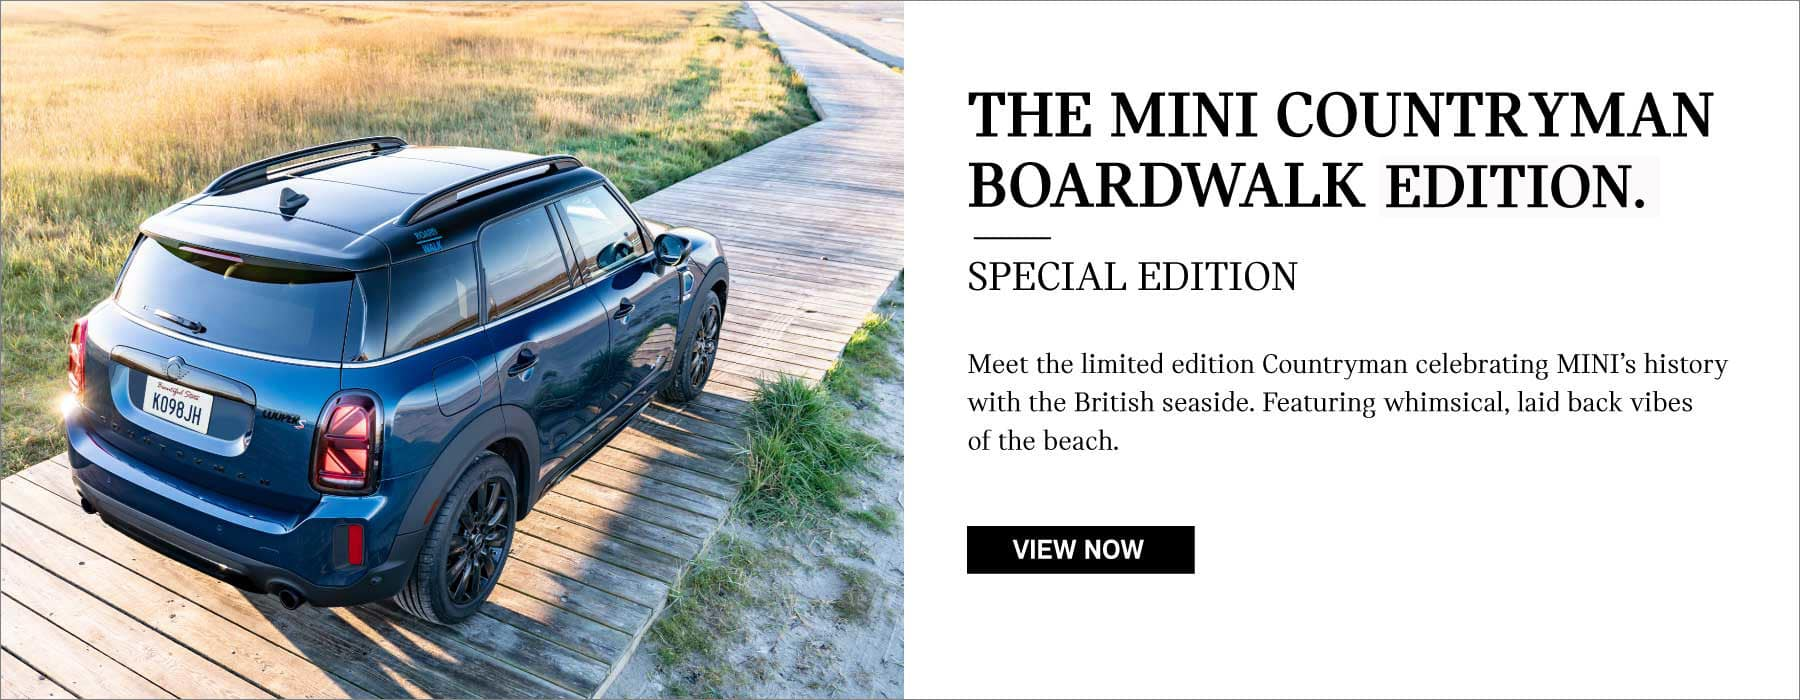 THE MINI COUNTRYMAN BOARDWALK EDTION Special Edition. Meet the limited edition Countryman celebrating MINI's history with the British seaside. Featuring whimsical, laid back vibes of the beach.